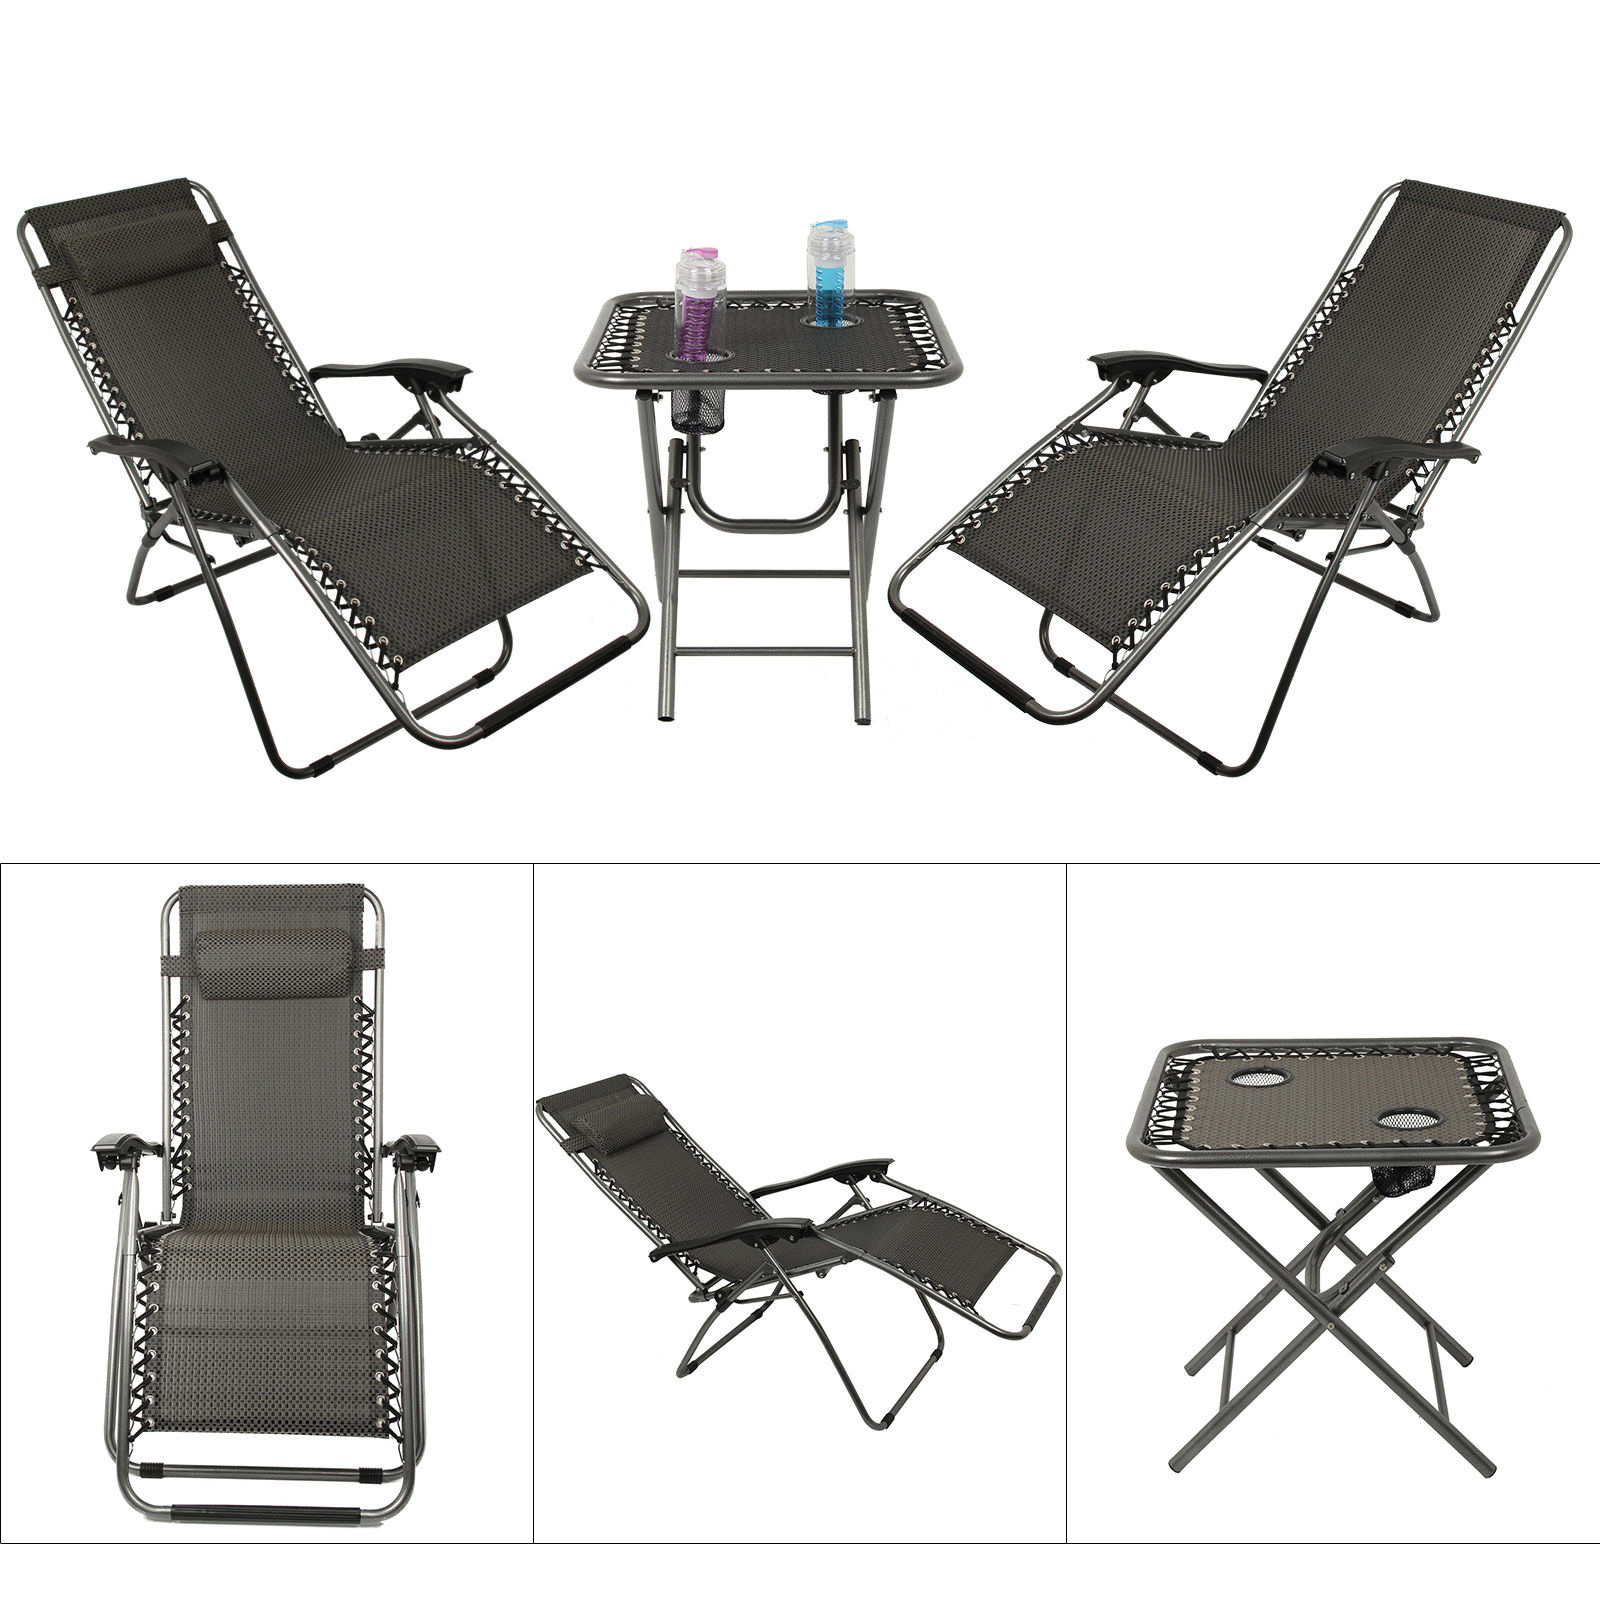 3 Piece Garden Furniture Set Outdoor Reclining Lounger Chairs